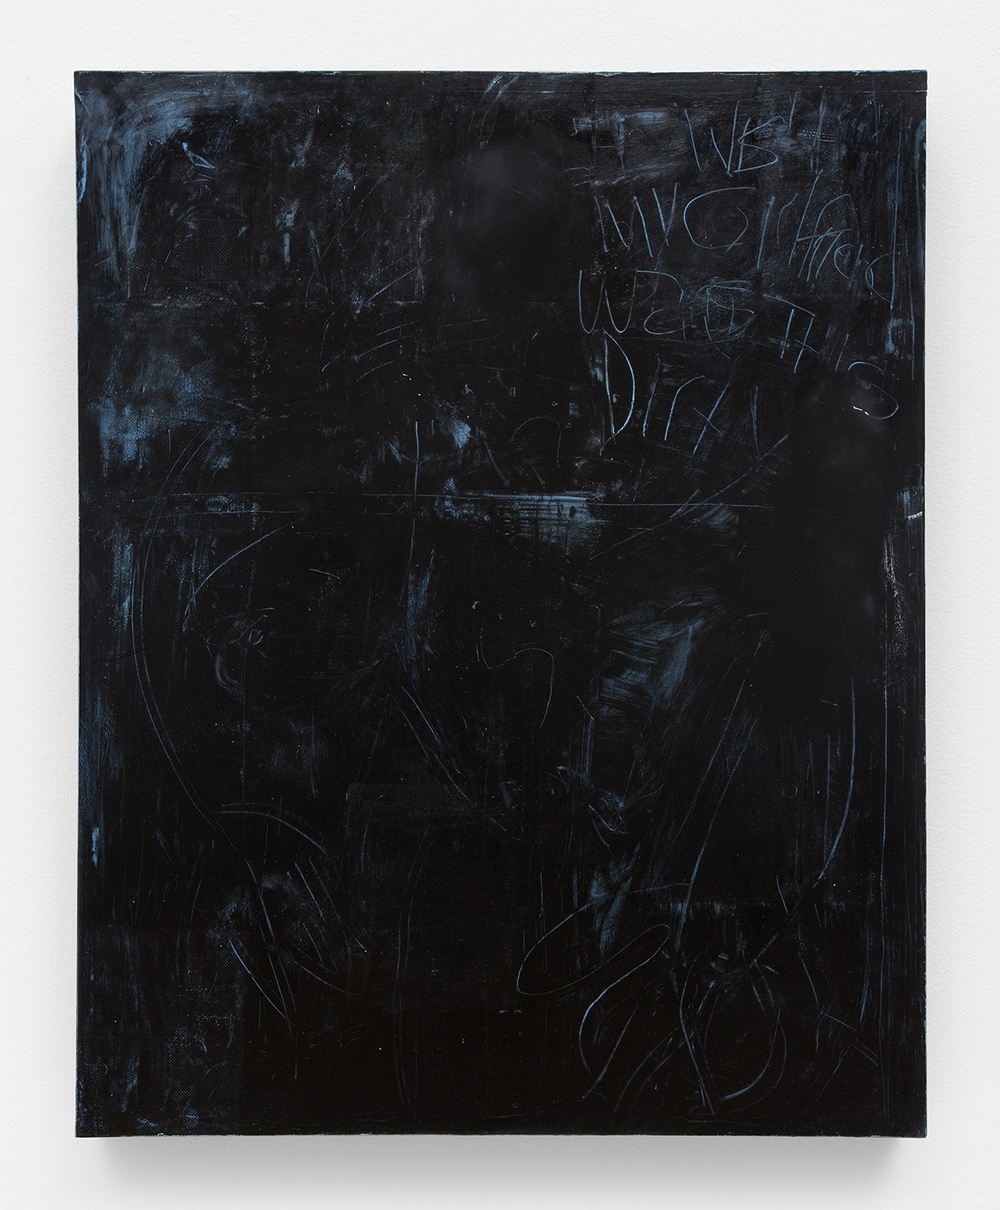 Black Girlfriend, 2012 Oil, sheetrock, joint compound, metal and wood 60 x 48 inches